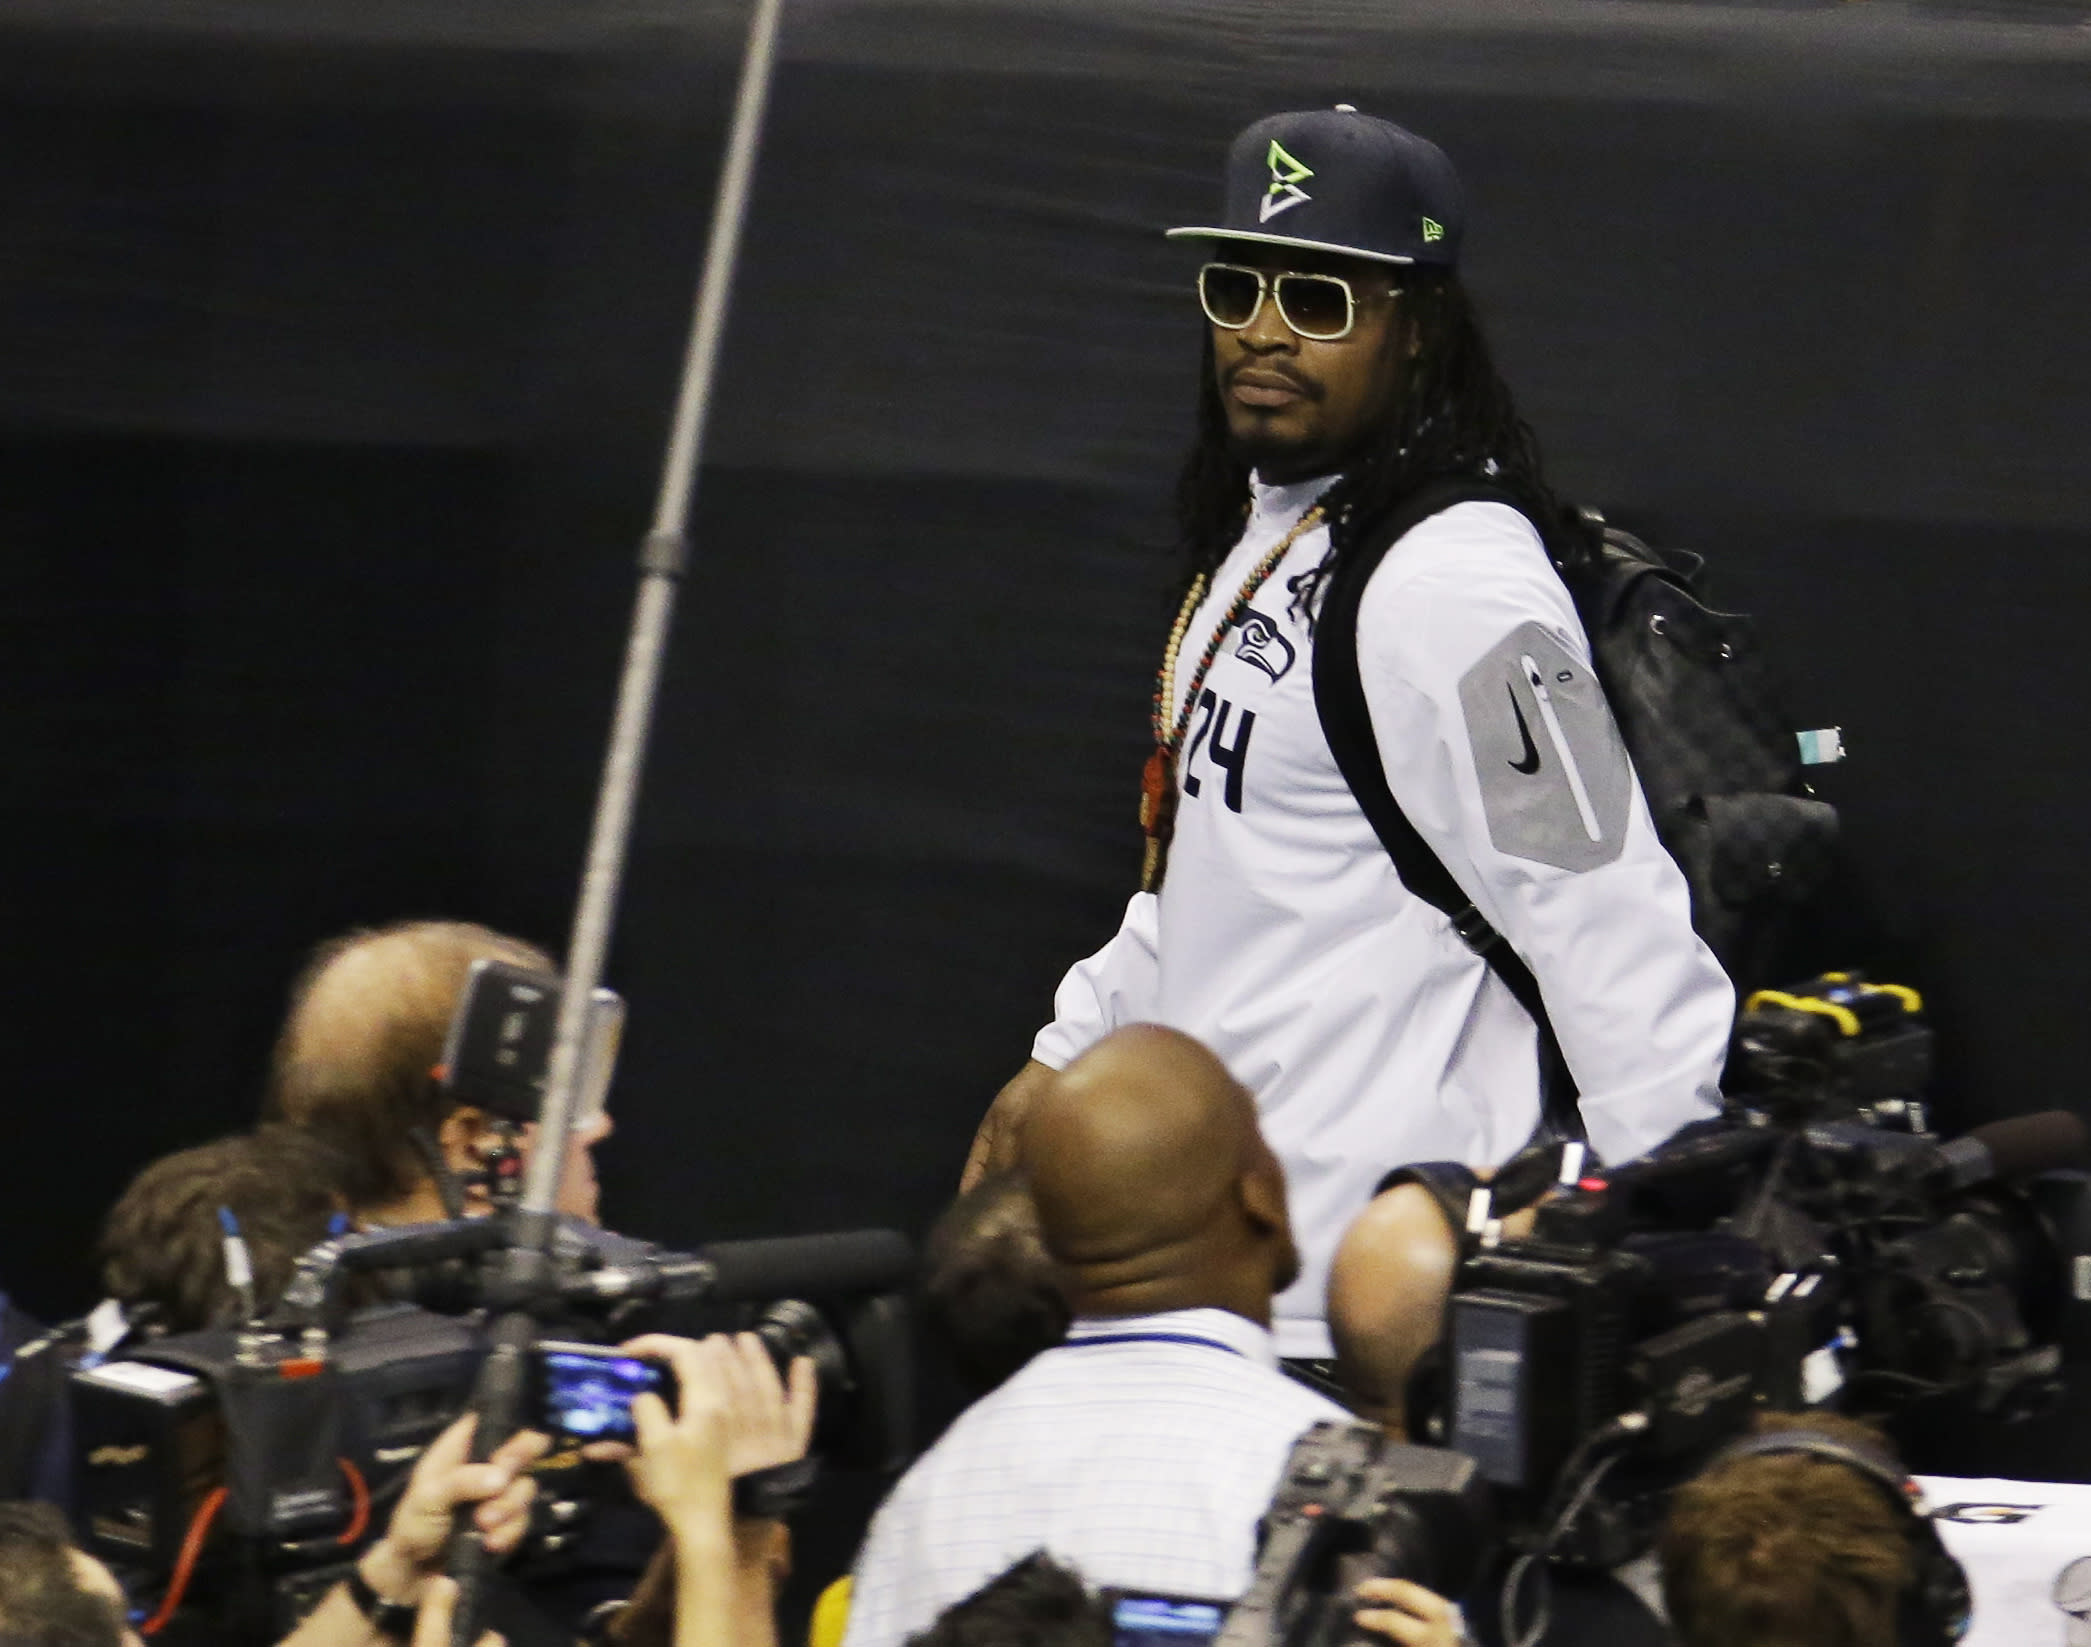 Lynch at Media Day: 'I'm here so I don't get fined'